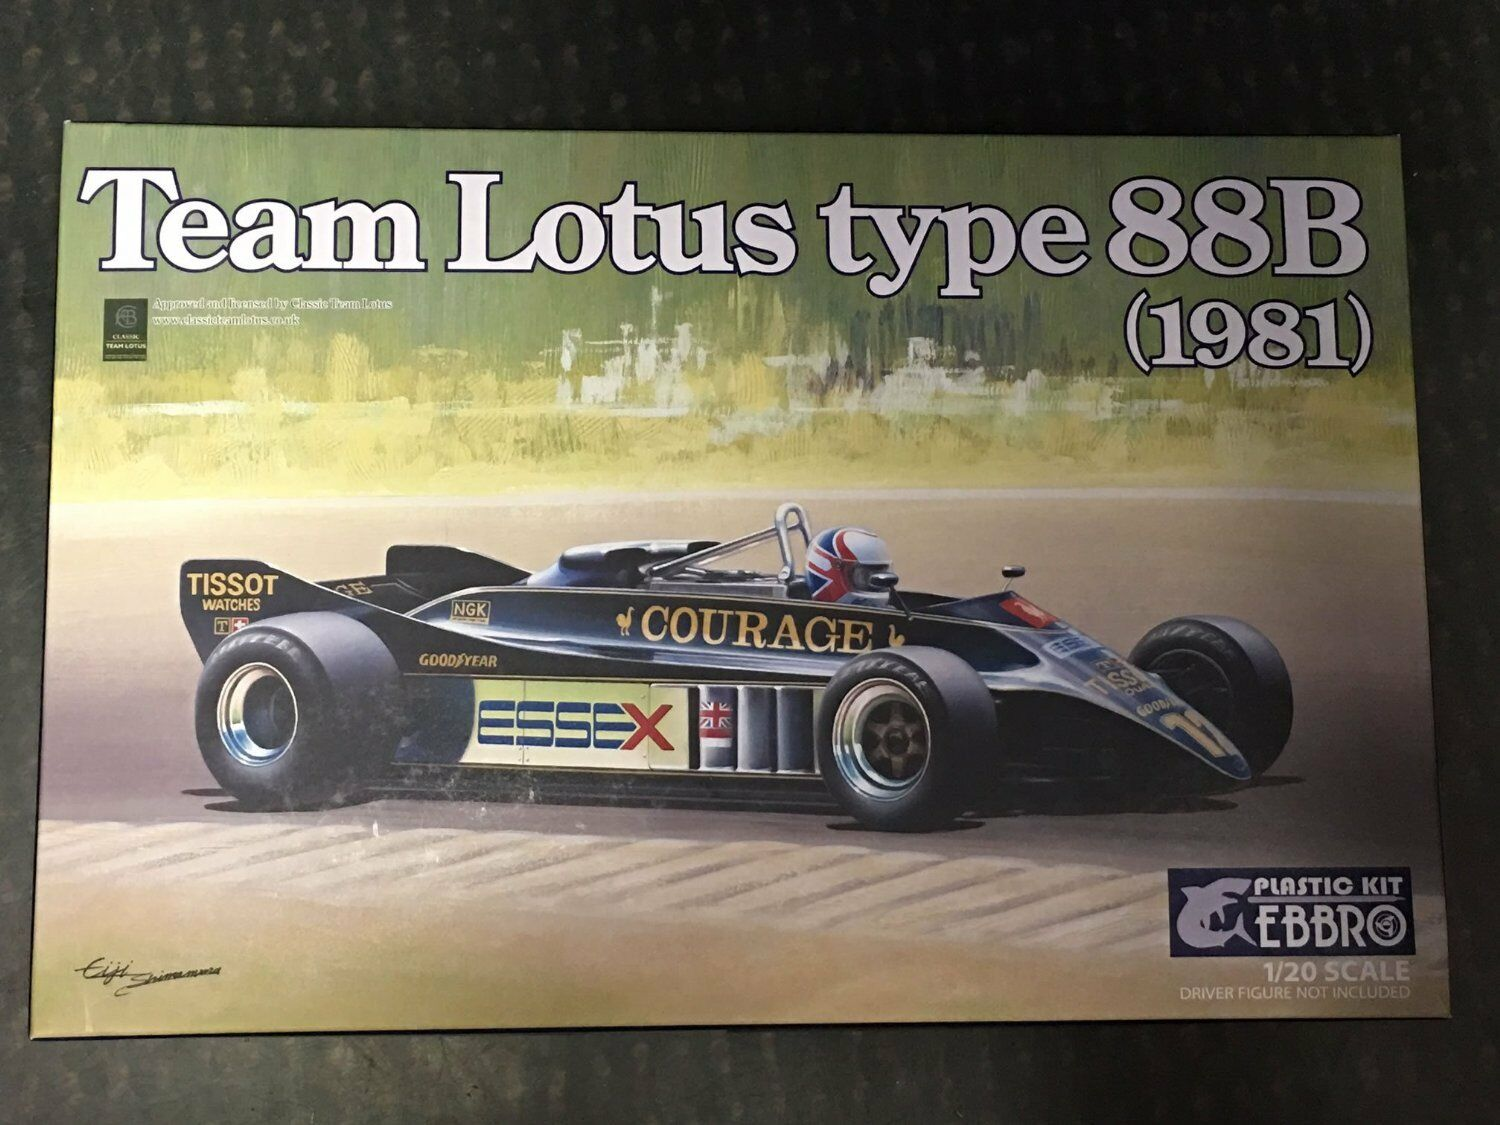 Ebbro 20010 Team Lotus Type  88B 1981 1 20 scale kit  bienvenue à choisir